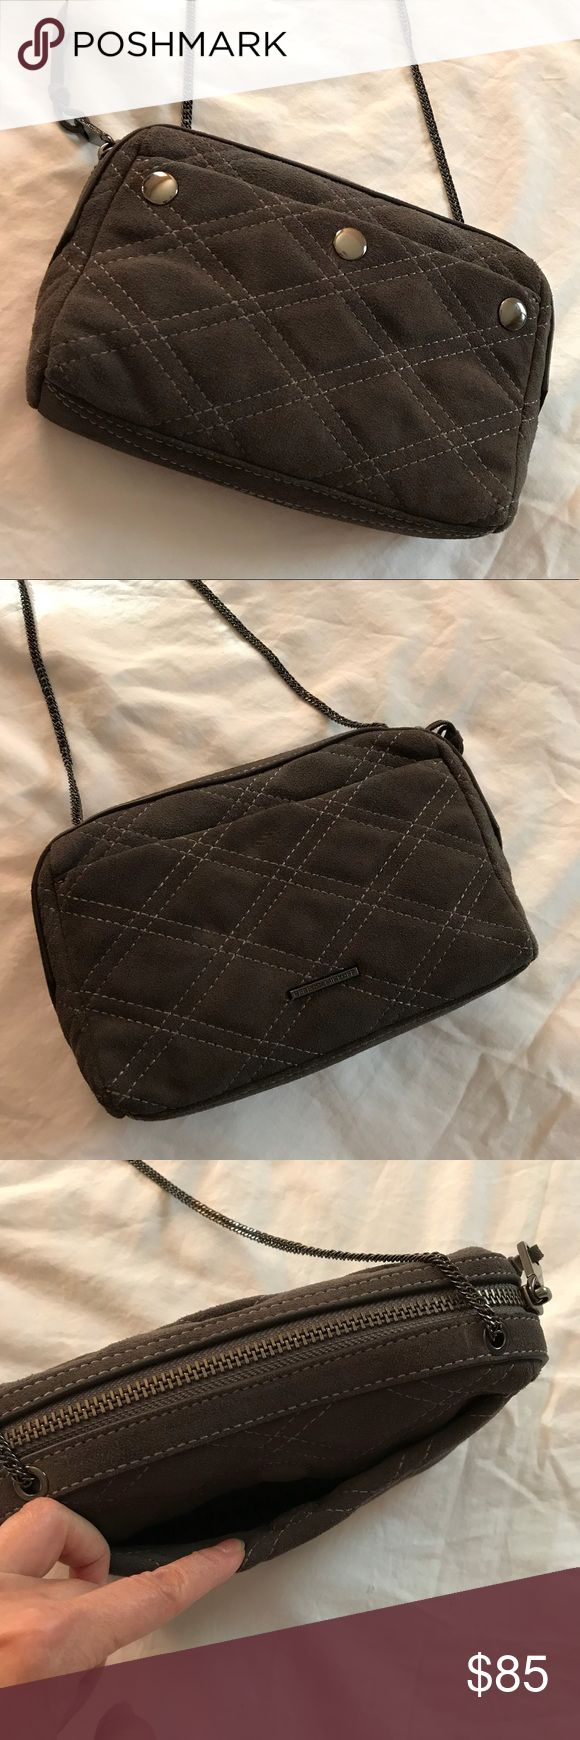 """REBECCA MINKOFF Grey Quilted Suede Crossover Bag Brand new no tags, very cute Rebecca Minkoff Crossover Bag in a grey quilted suede leather with a thin metal chain. Chain strap is in a dark grey metal color with a 22"""" drop. Comes with extra leather replacement tassels for the zipper pull. Rebecca Minkoff Bags Crossbody Bags"""